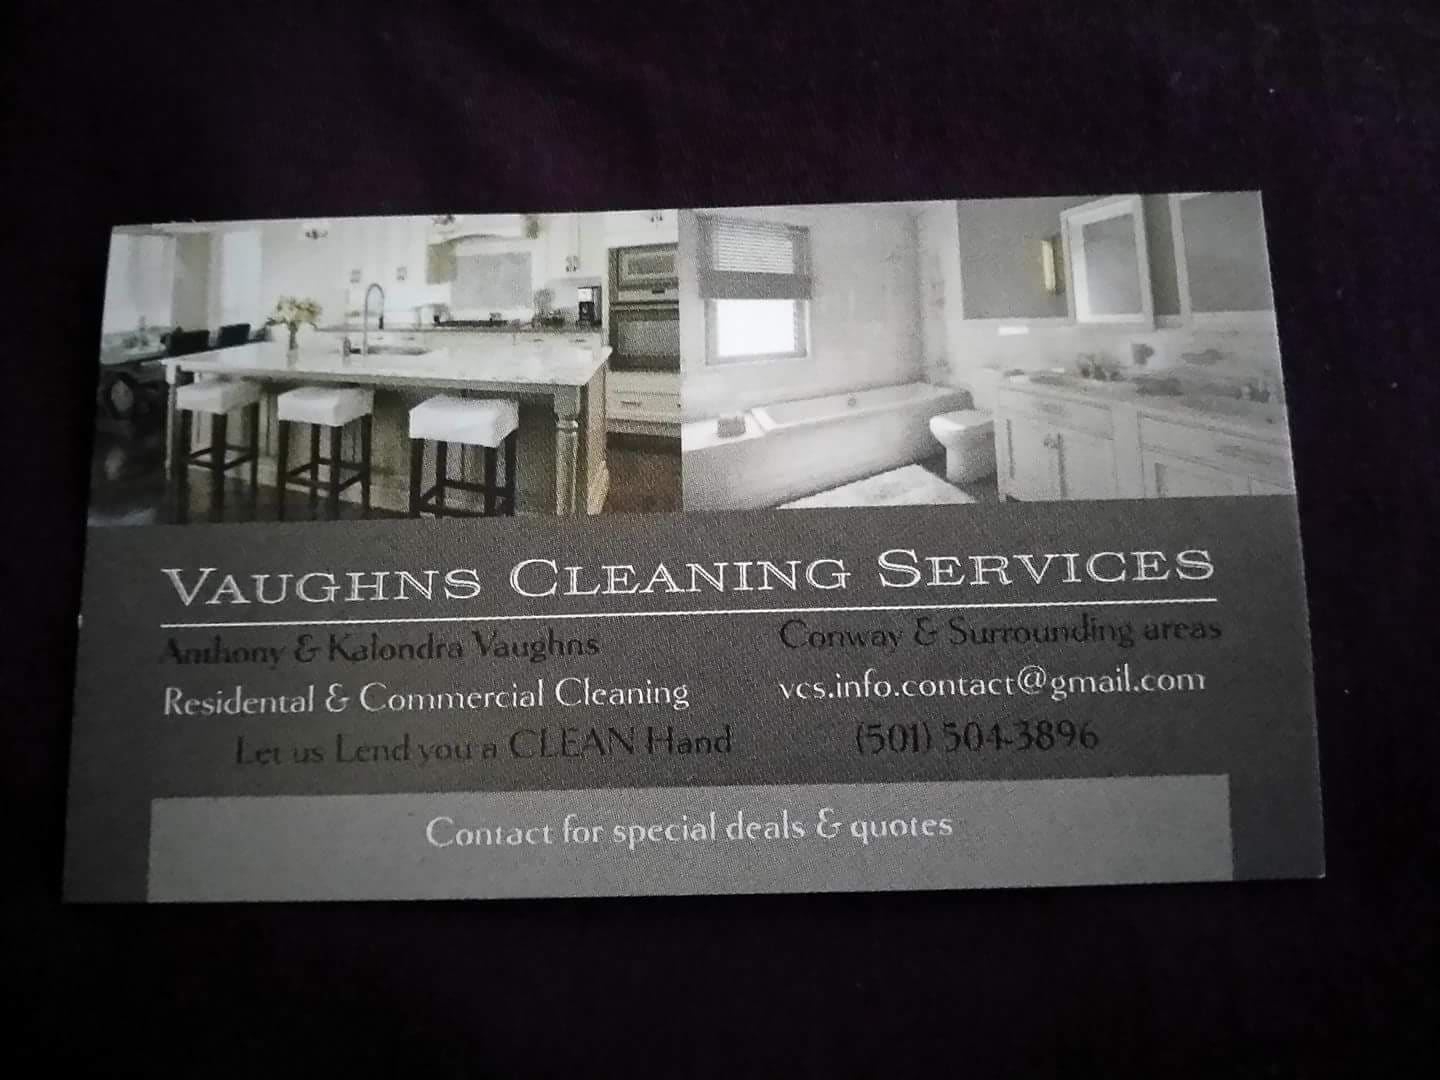 Vaughns cleaning services